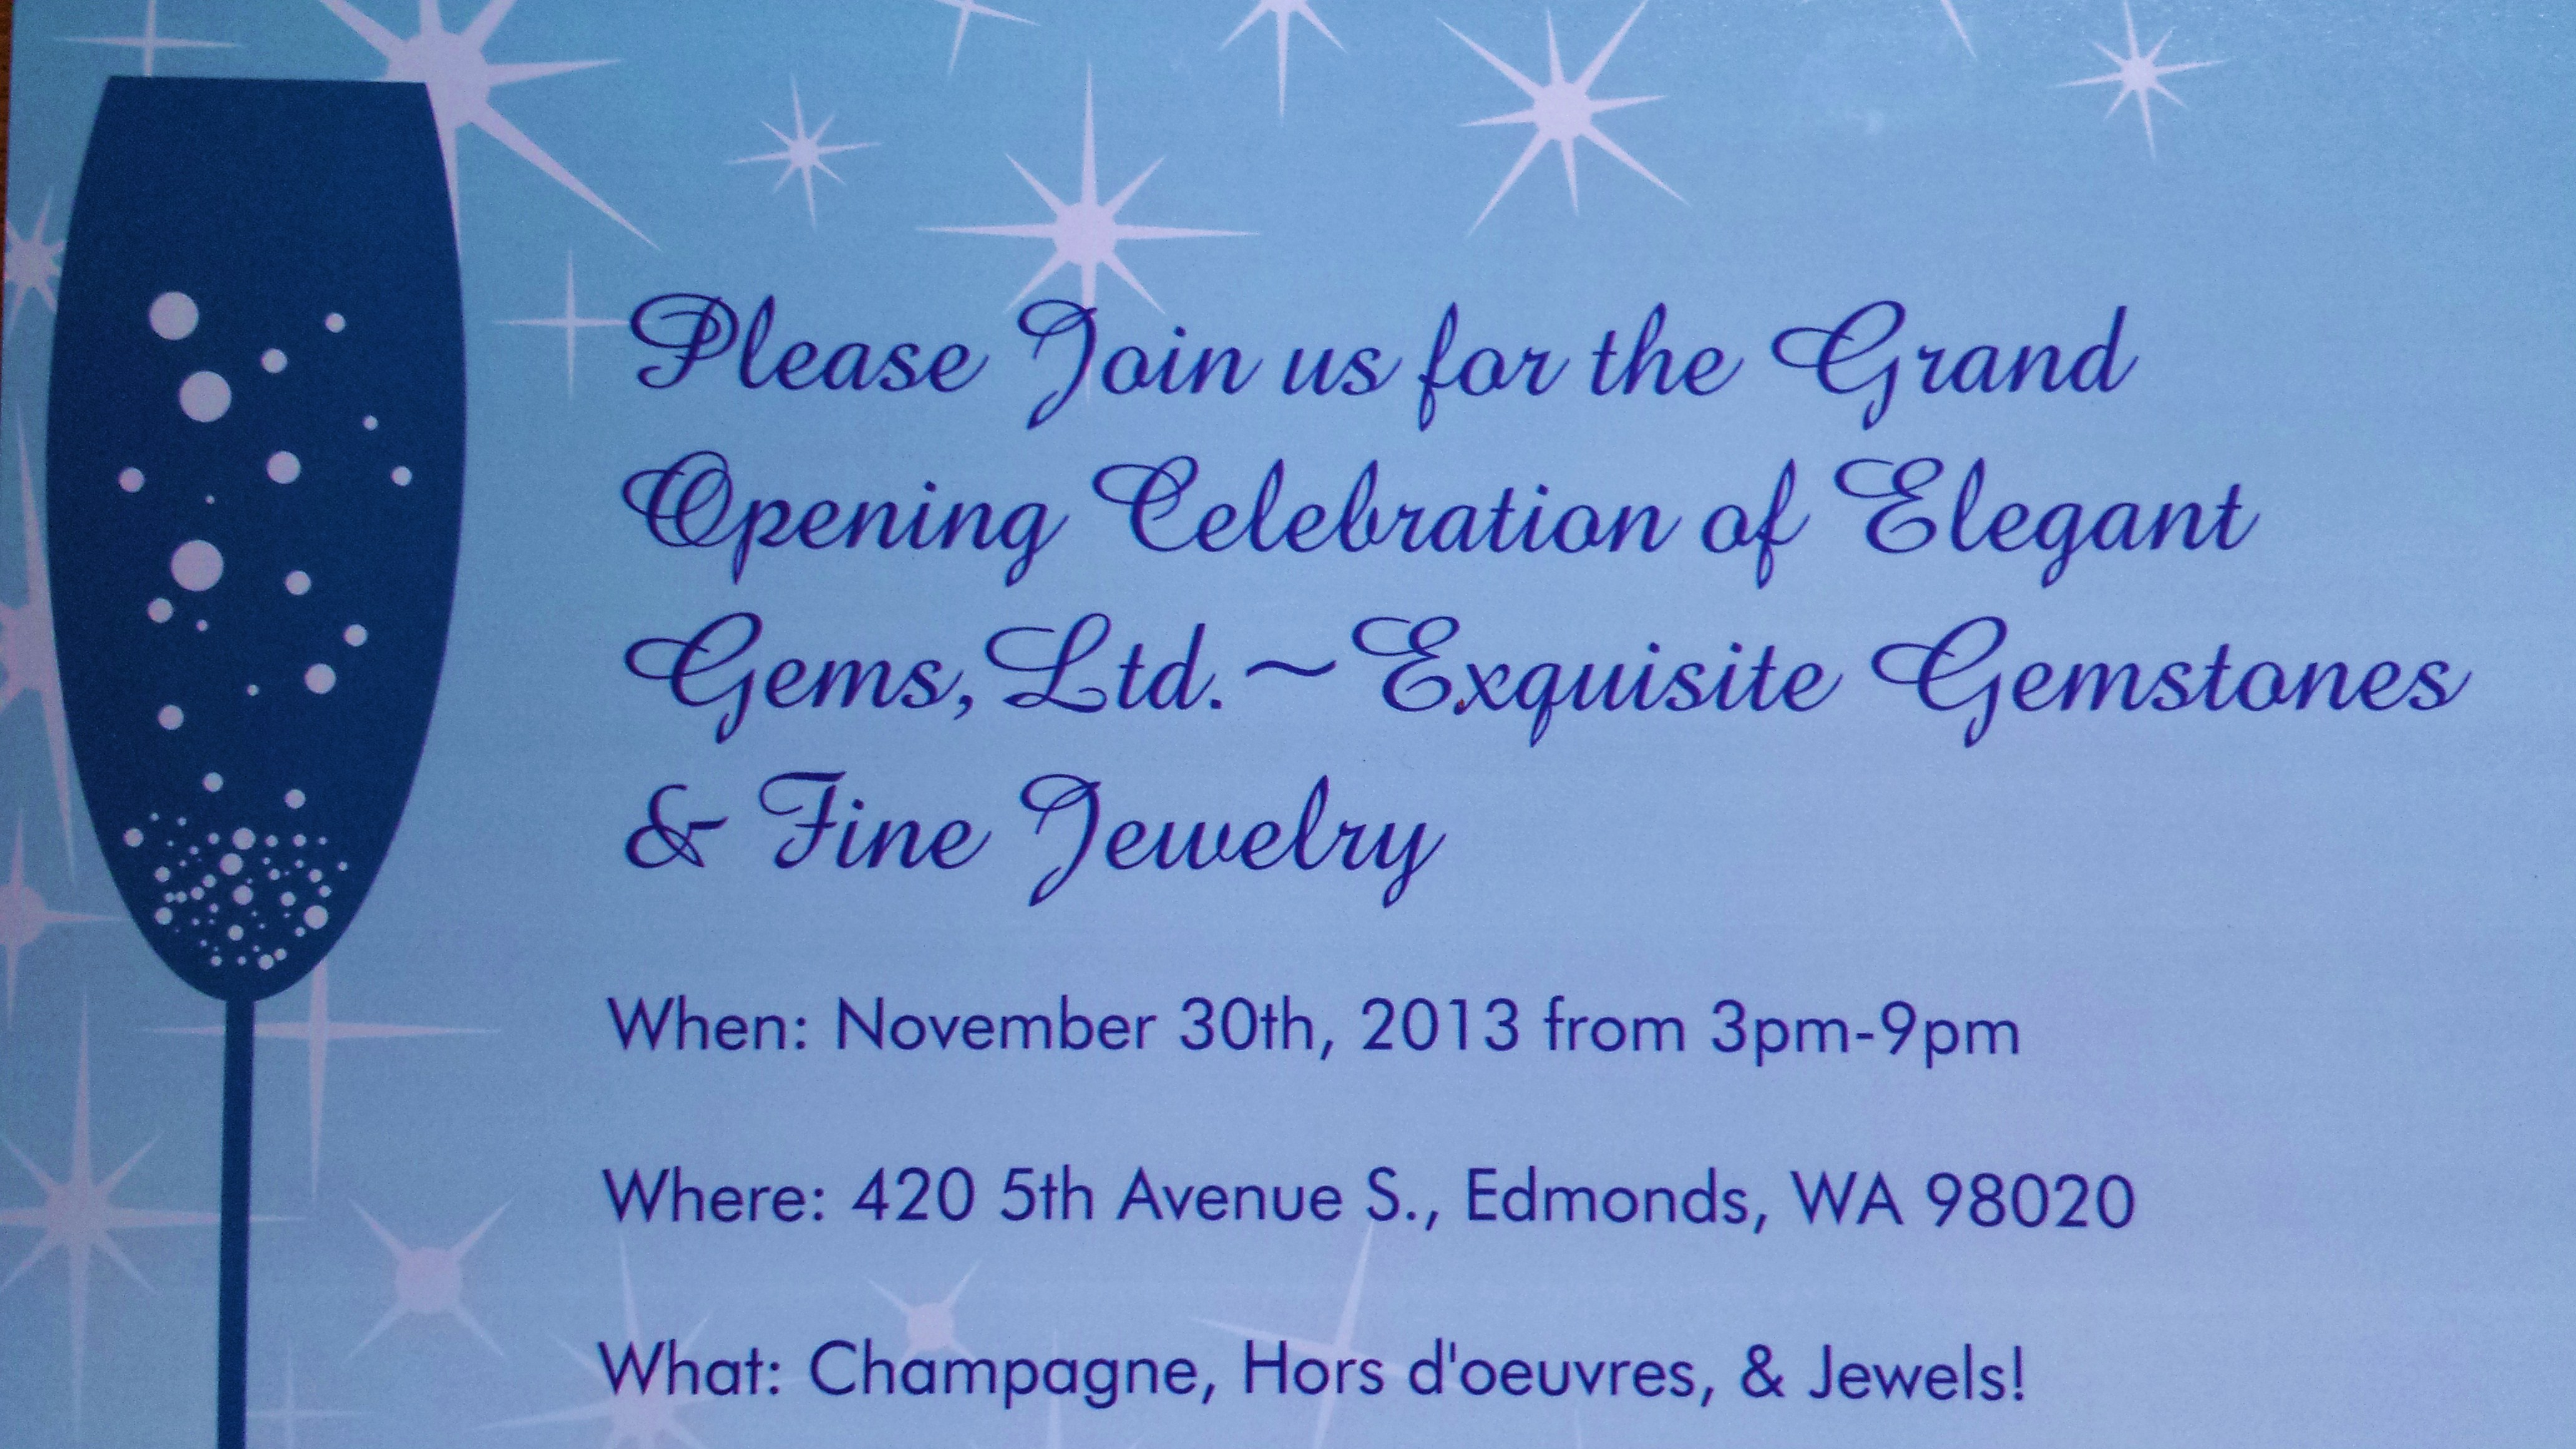 Elegant gems invitation my edmonds news elegant gems invitation stopboris Choice Image